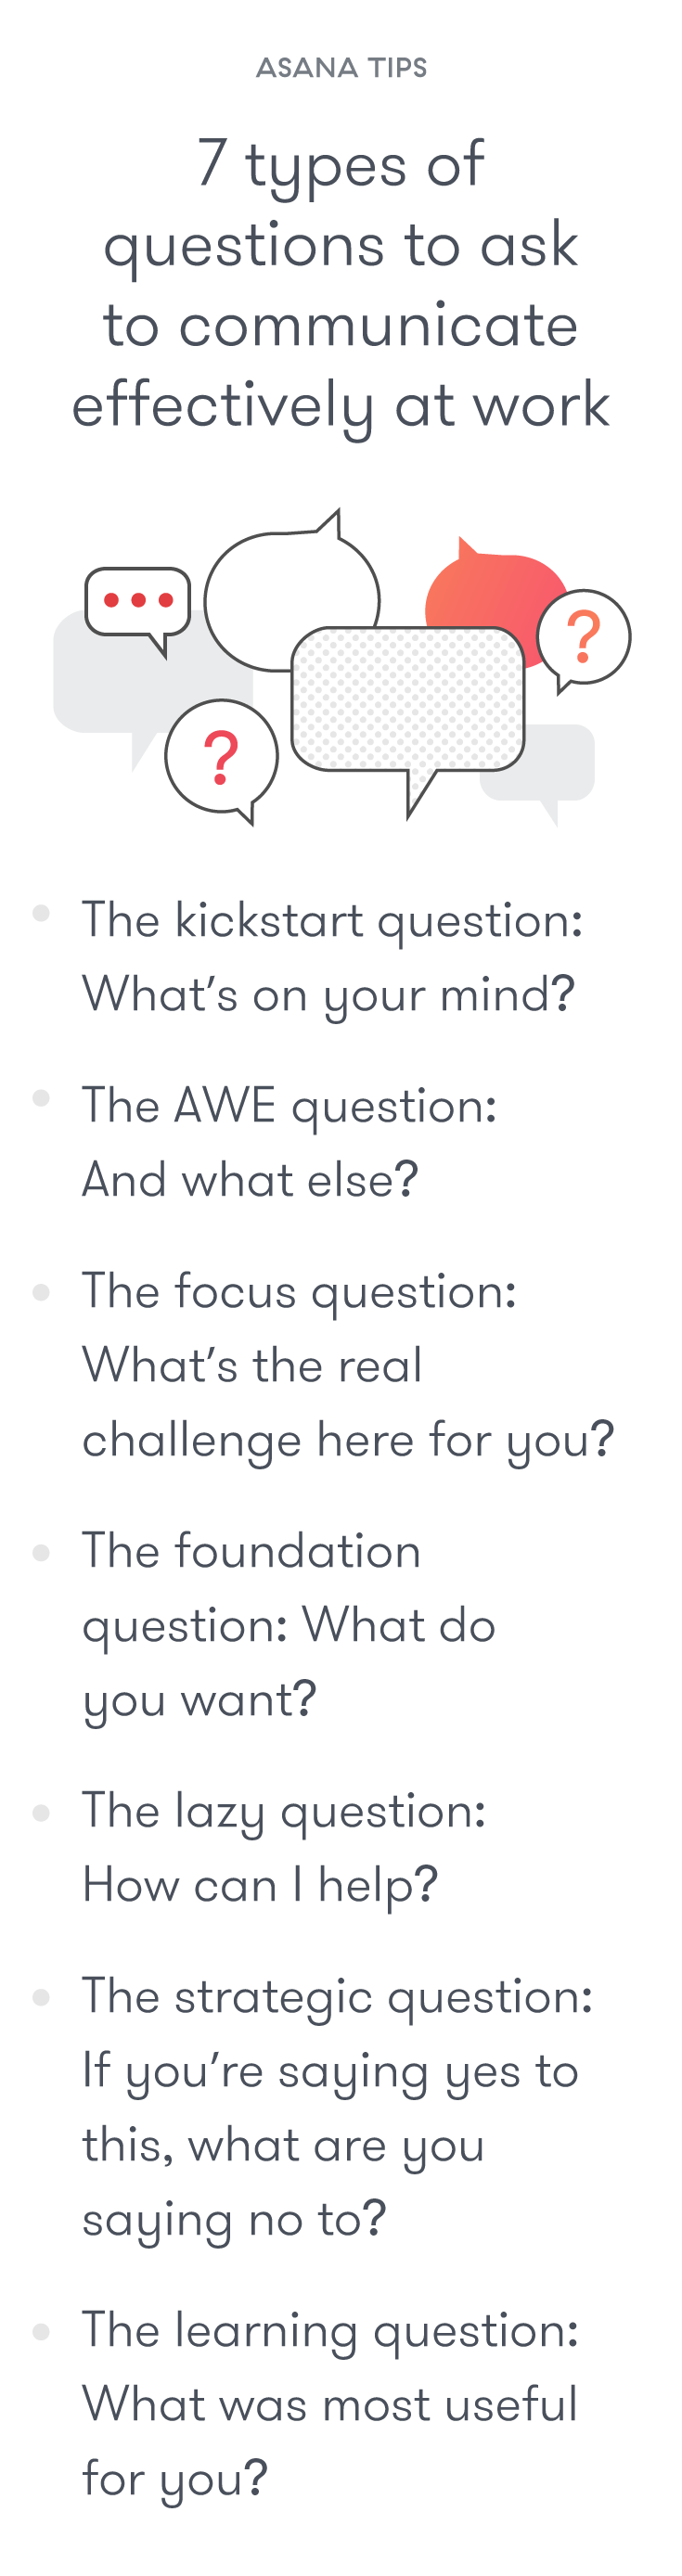 7 questions you should ask to develop effective